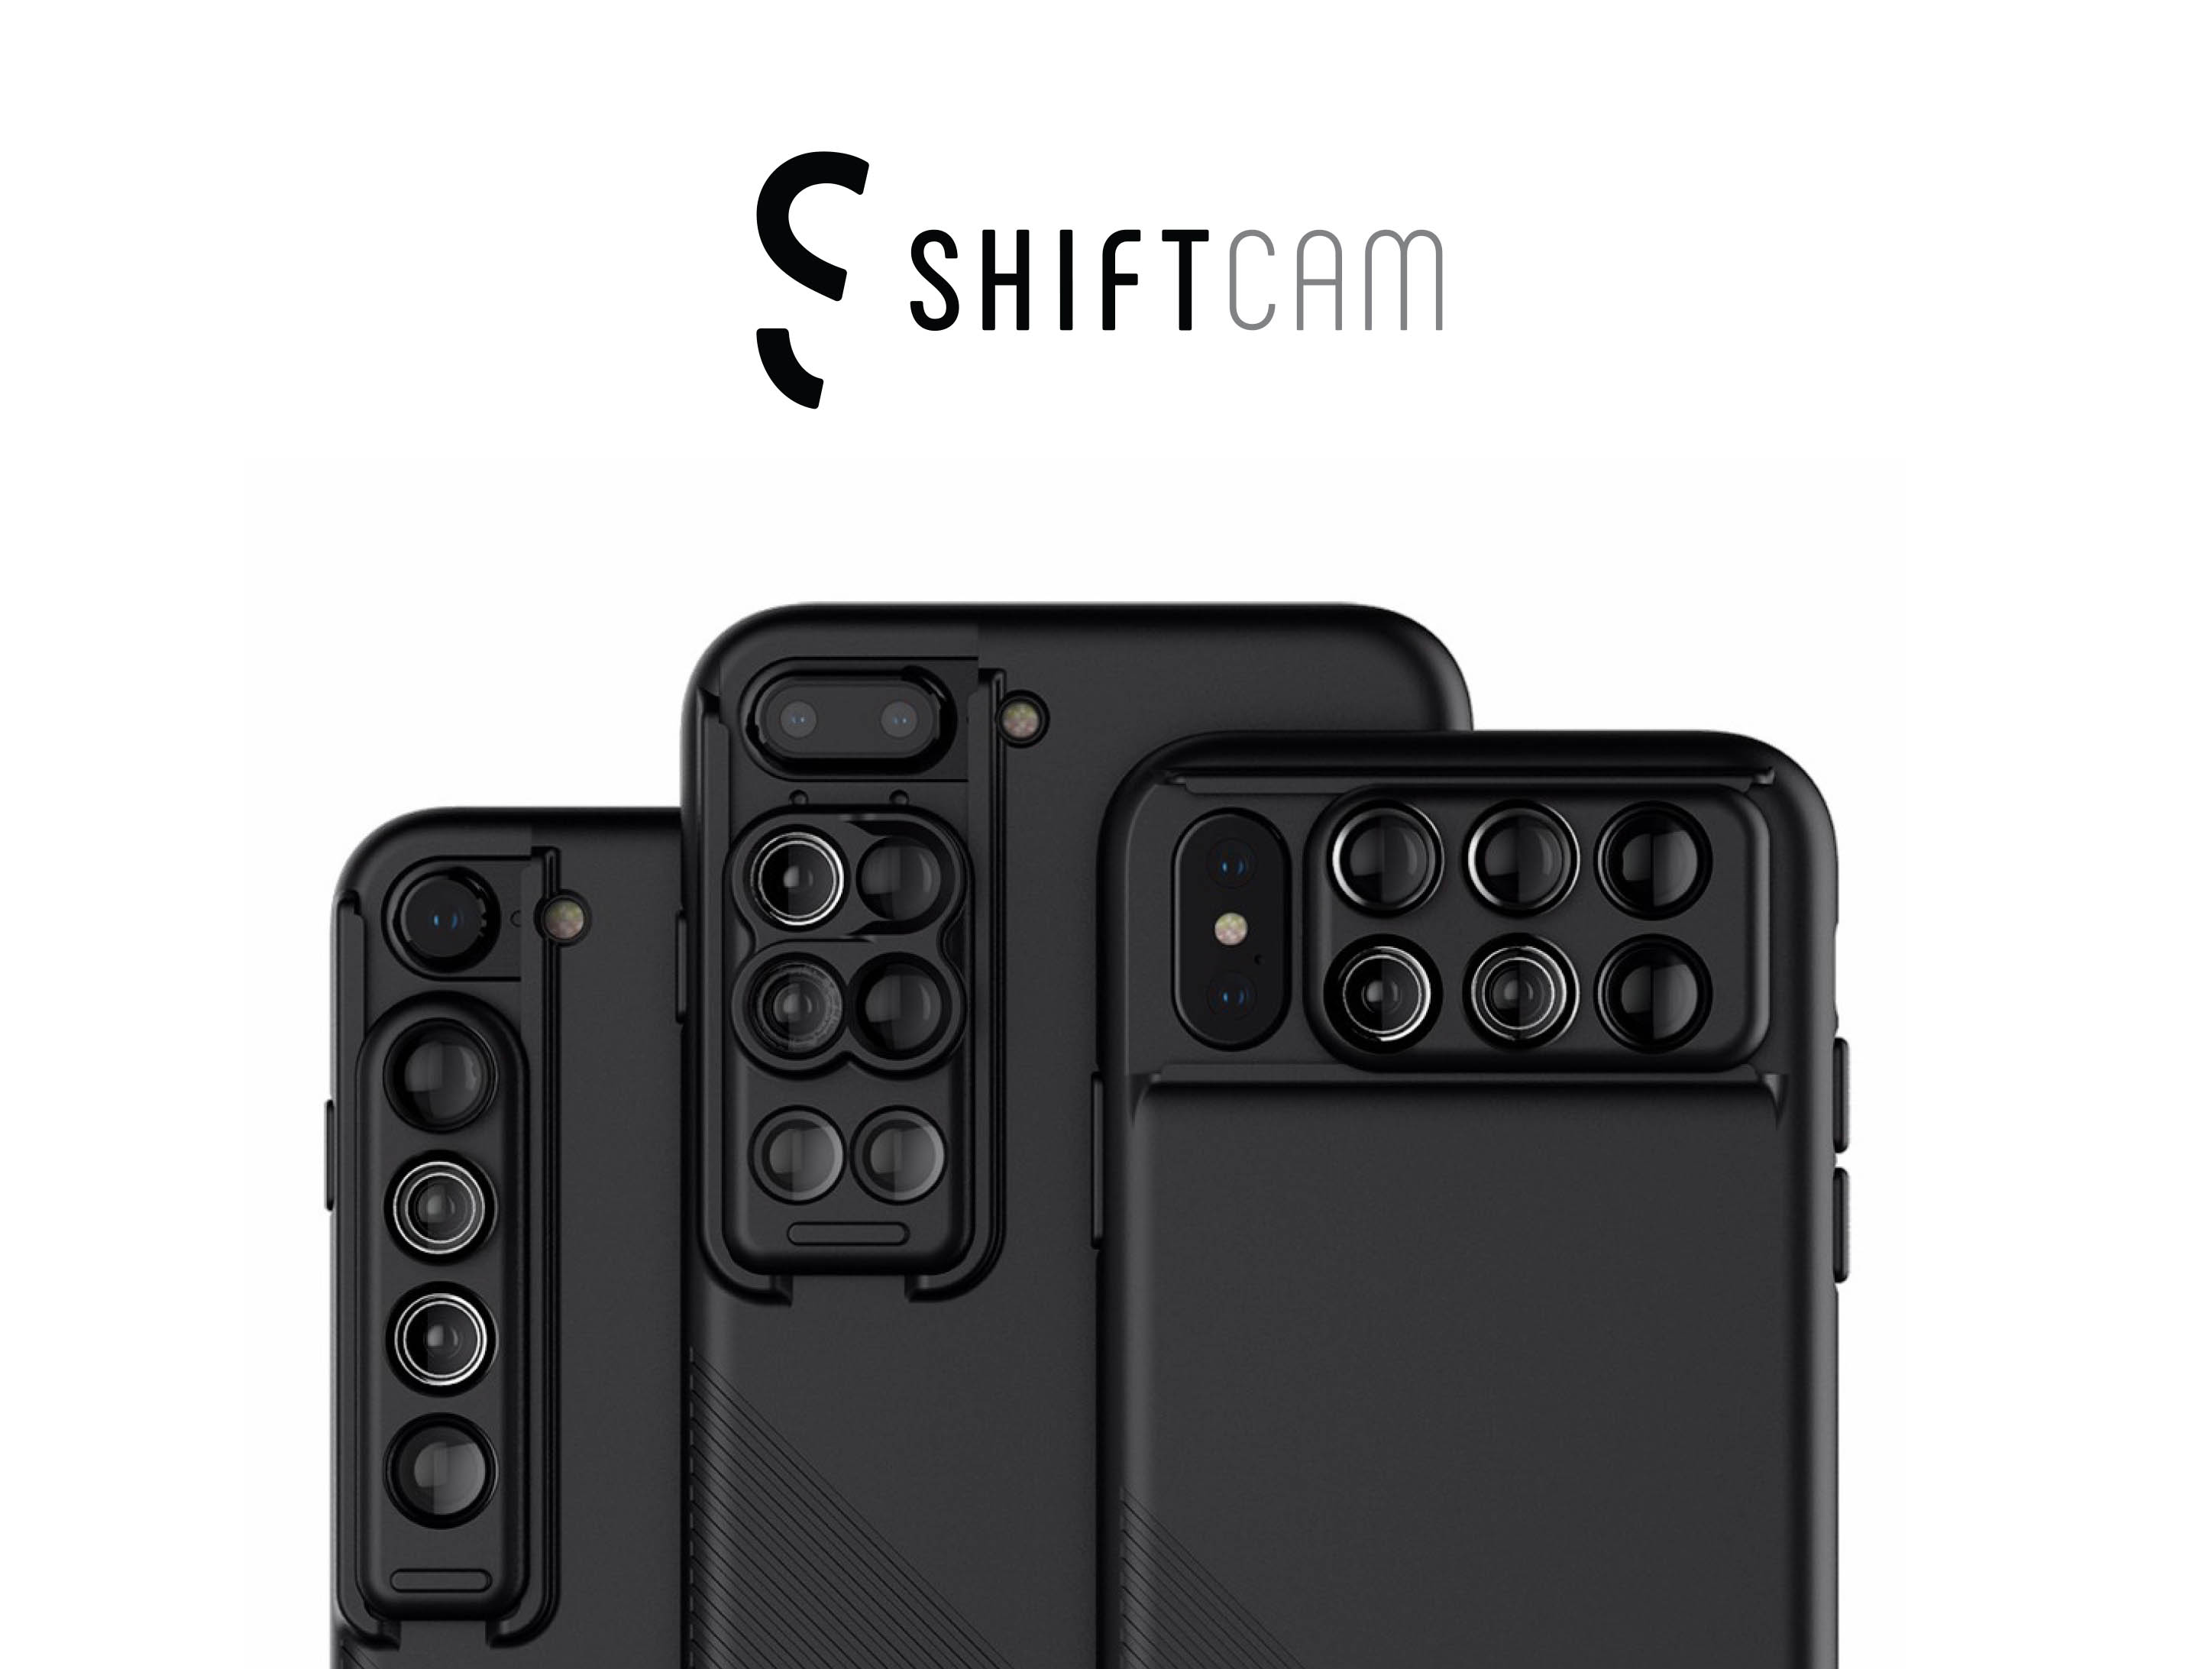 ShiftCam 2.0: 6-in-1 Travel Set with Front Facing Lens (for iPhone X, iPhone 8/8 Plus, iPhone 7/7 Plus)